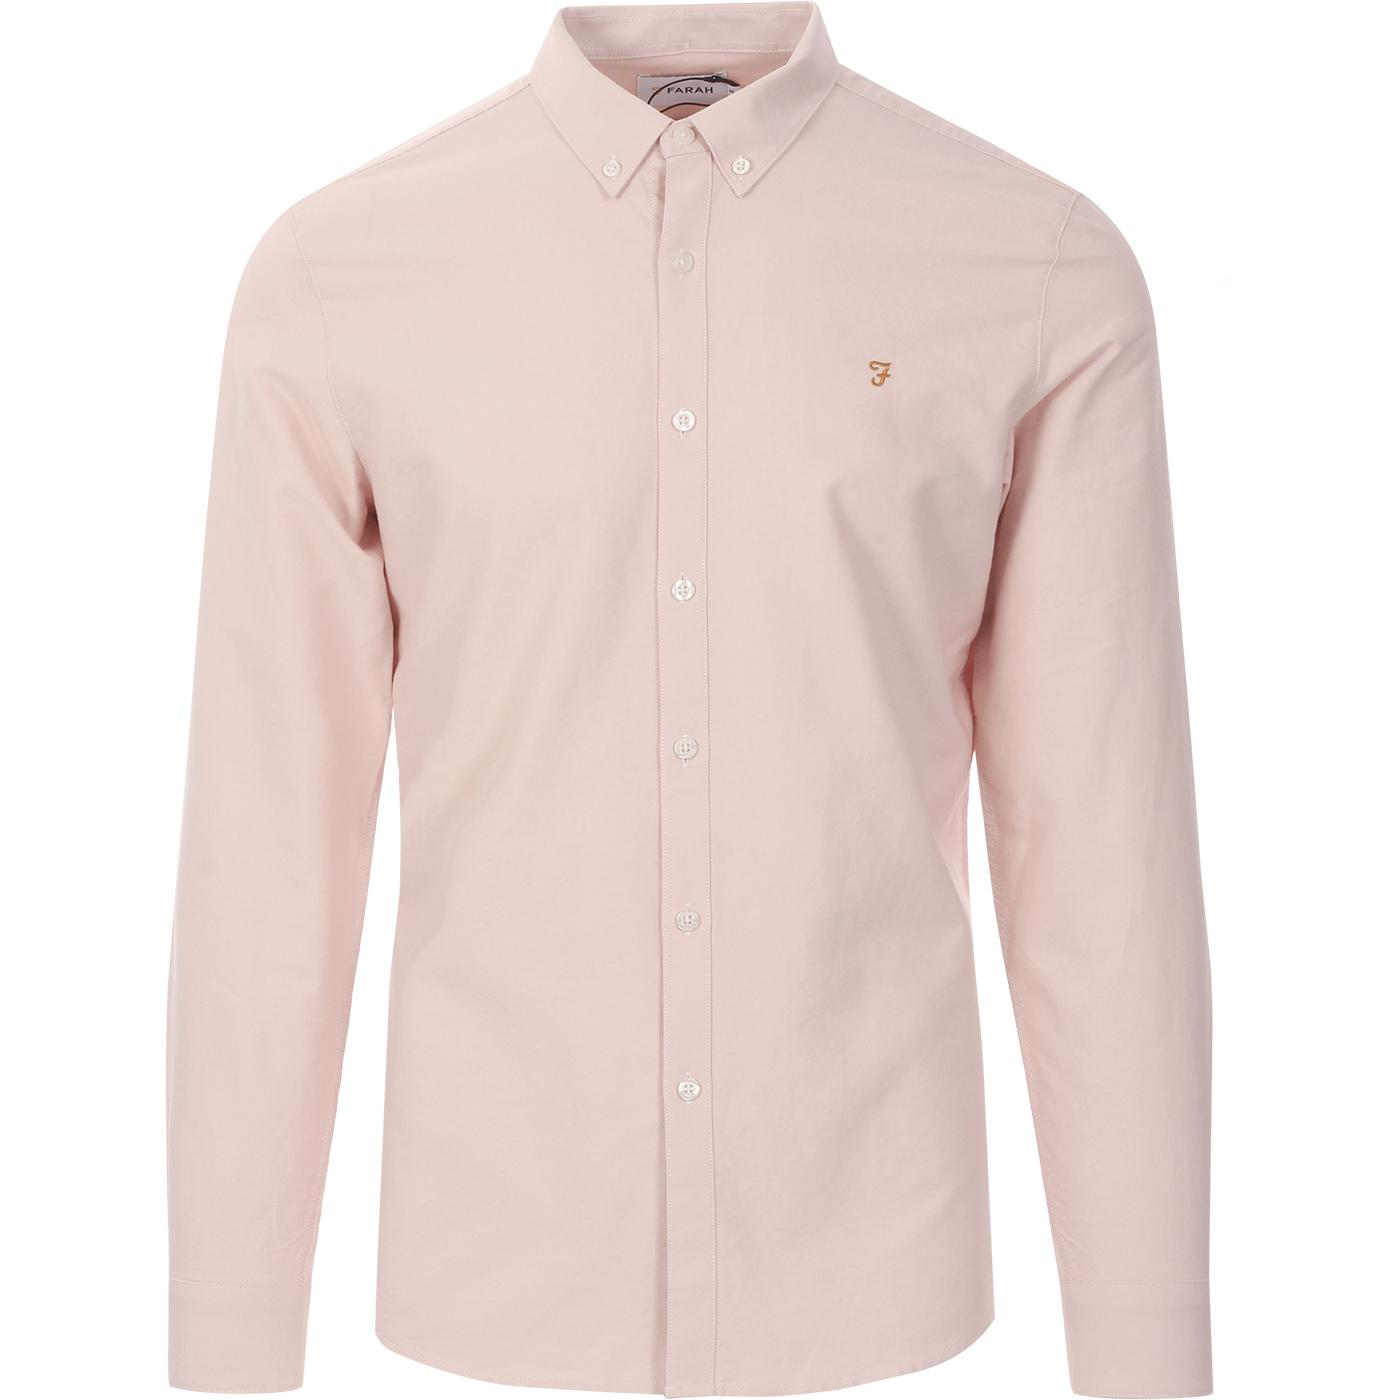 Brewer FARAH Slim Button Down Oxford Shirt (Pink)